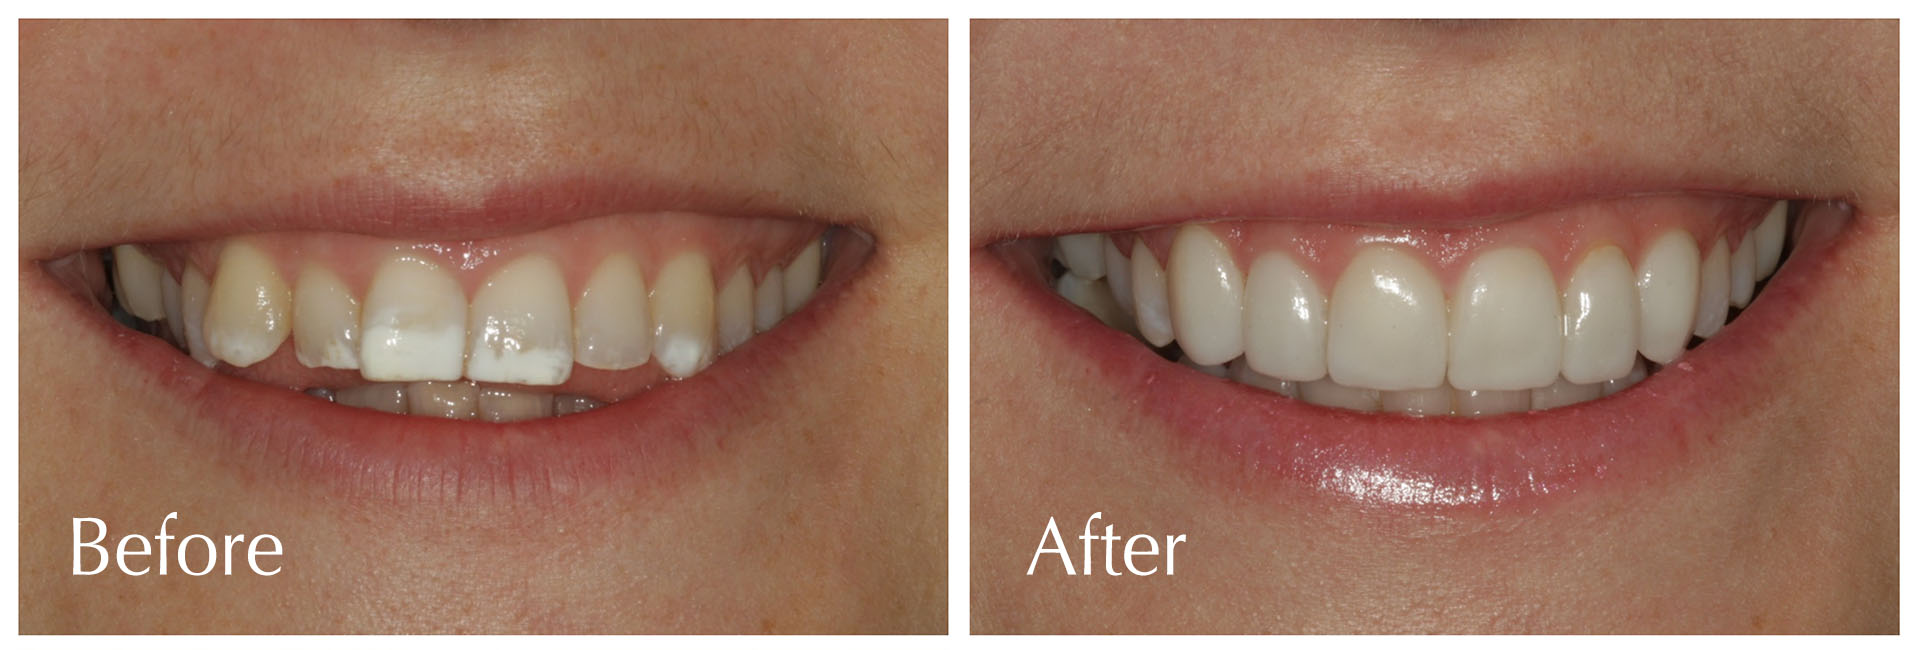 Veneers at Estetica